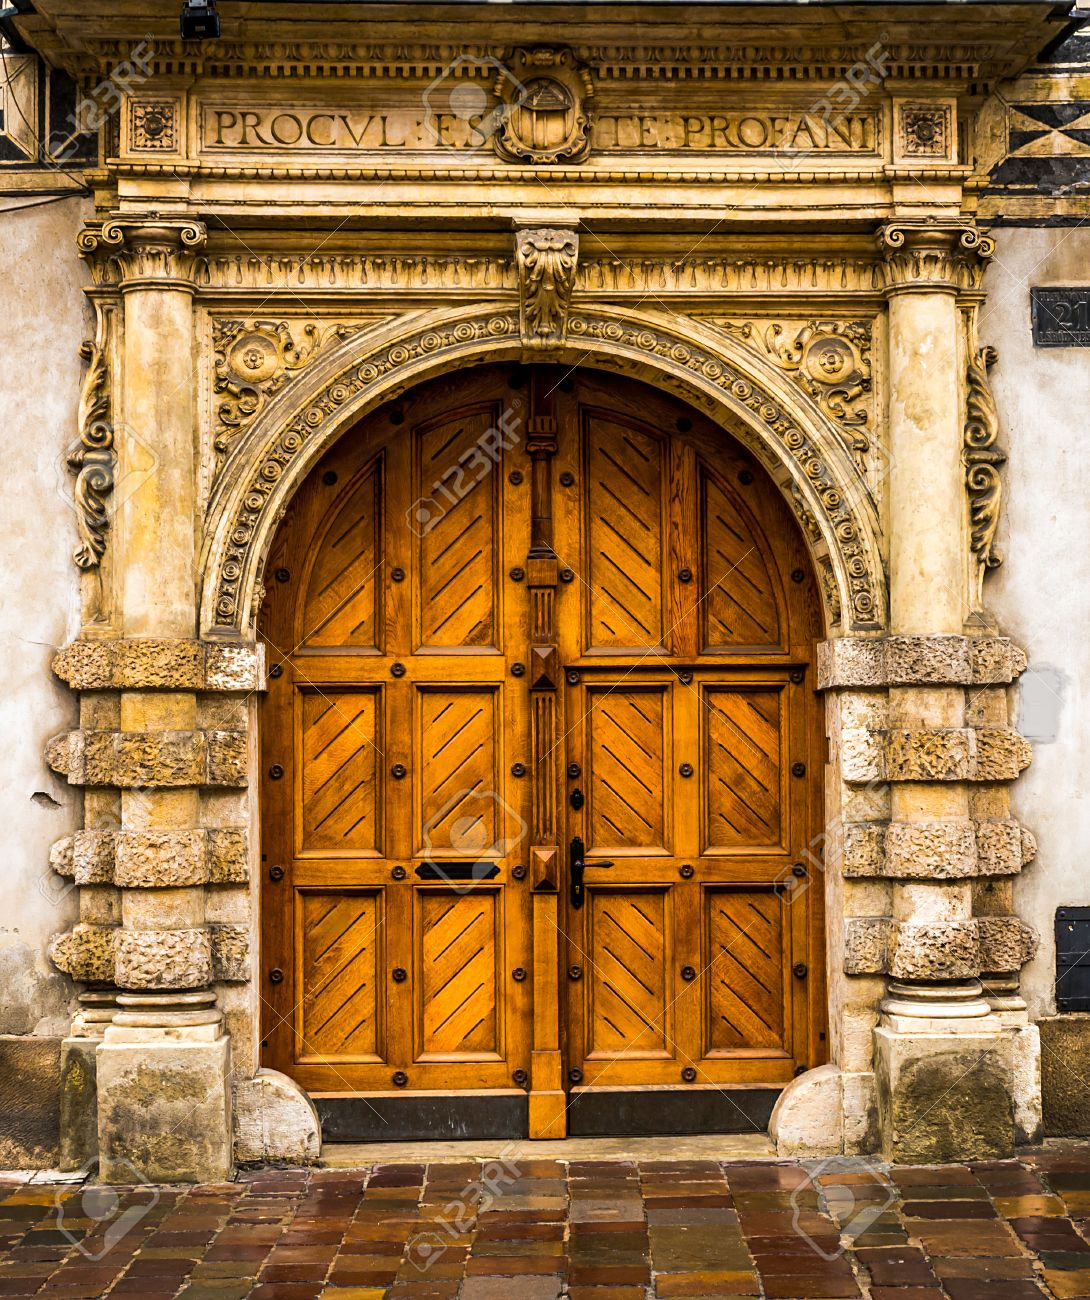 Architectural elements of the old European-style doors Stock Photo - 29308886 & Architectural Elements Of The Old European-style Doors Stock Photo ...